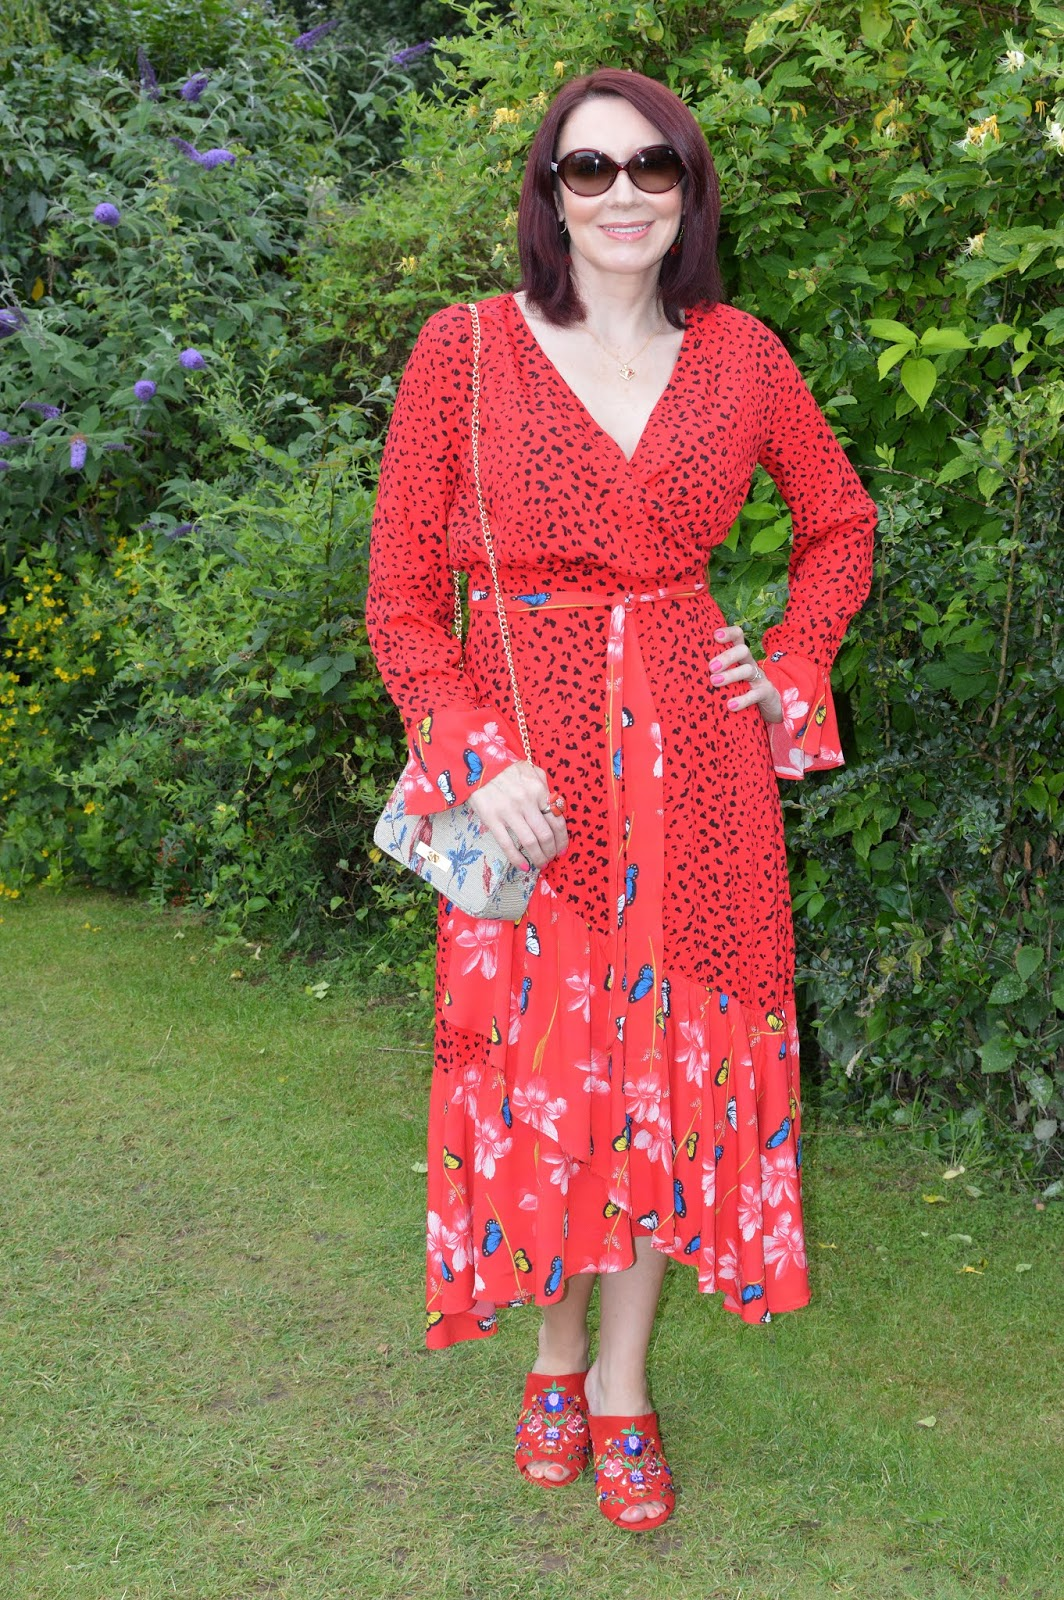 In Is This Mutton's Style Not Age Challenge post featuring Signature Colours, Emma from Style Splash chose red and is wearing a red dress with red patterned shoes